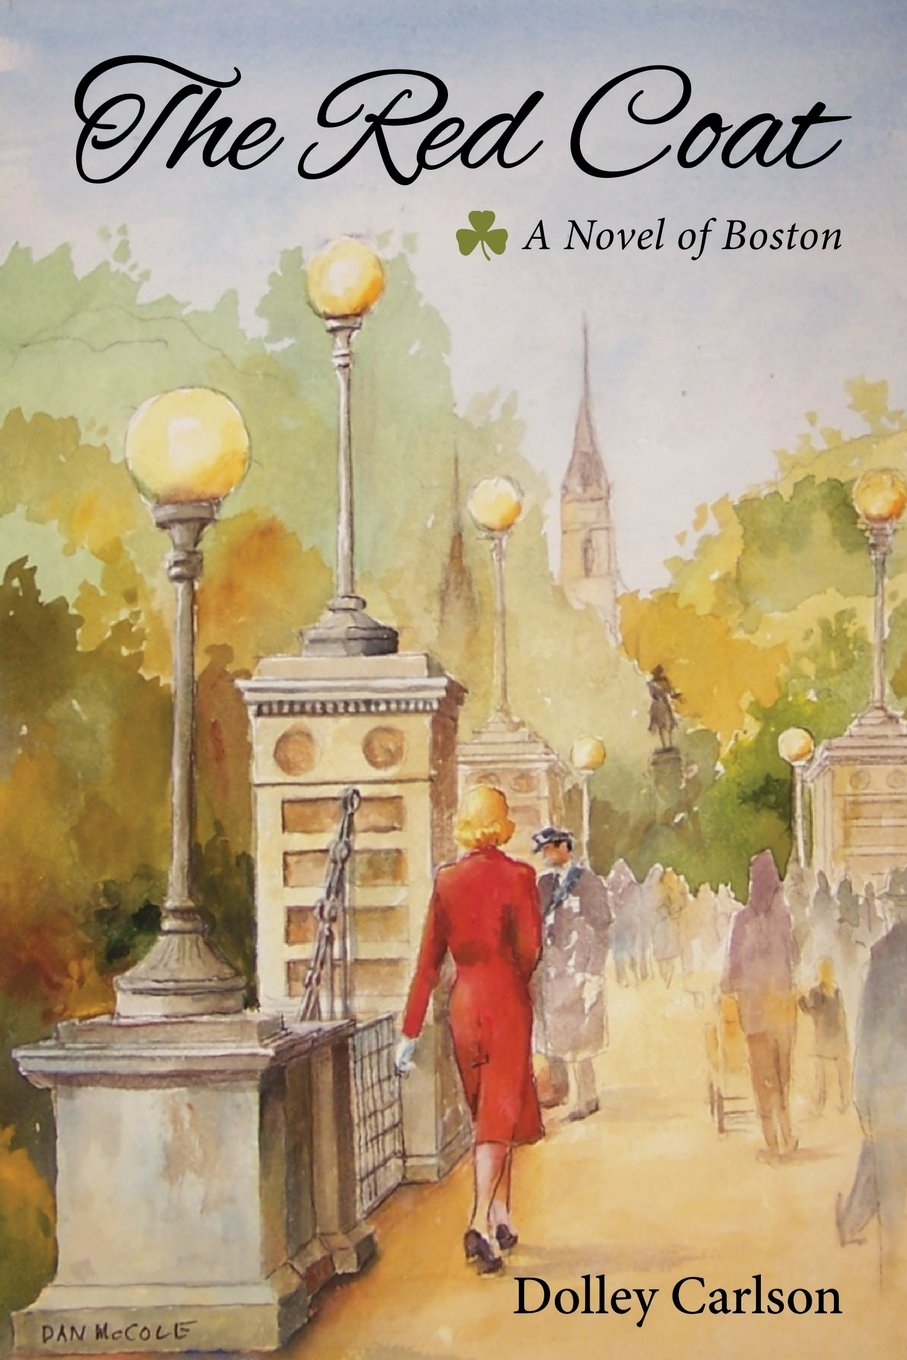 The Red Coat - A Novel of Boston: Dolley Carlson: 9780986223808 ...